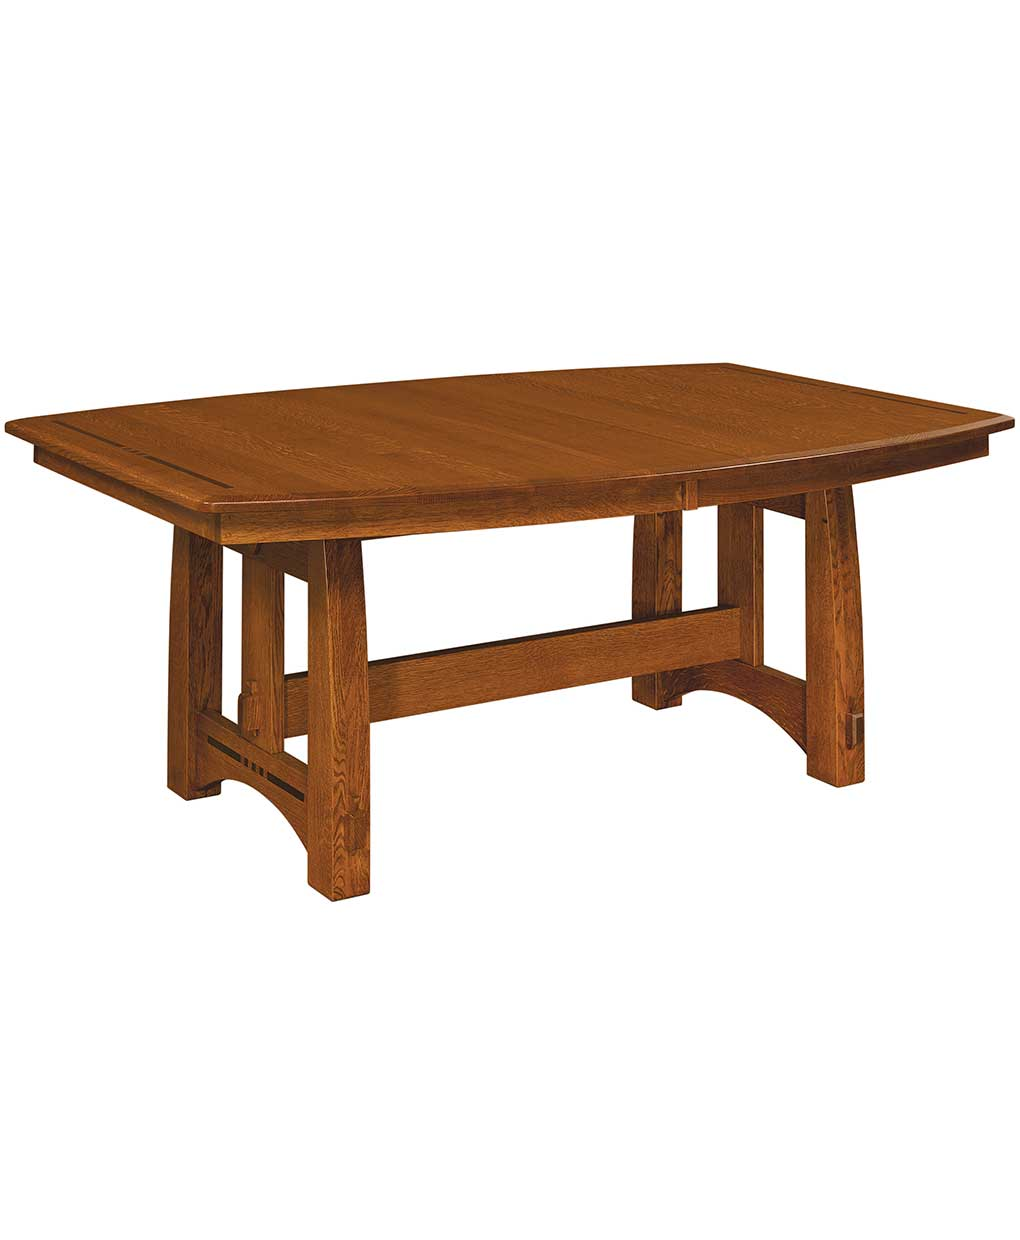 Colebrook trestle dining table amish direct furniture Trestle dining table